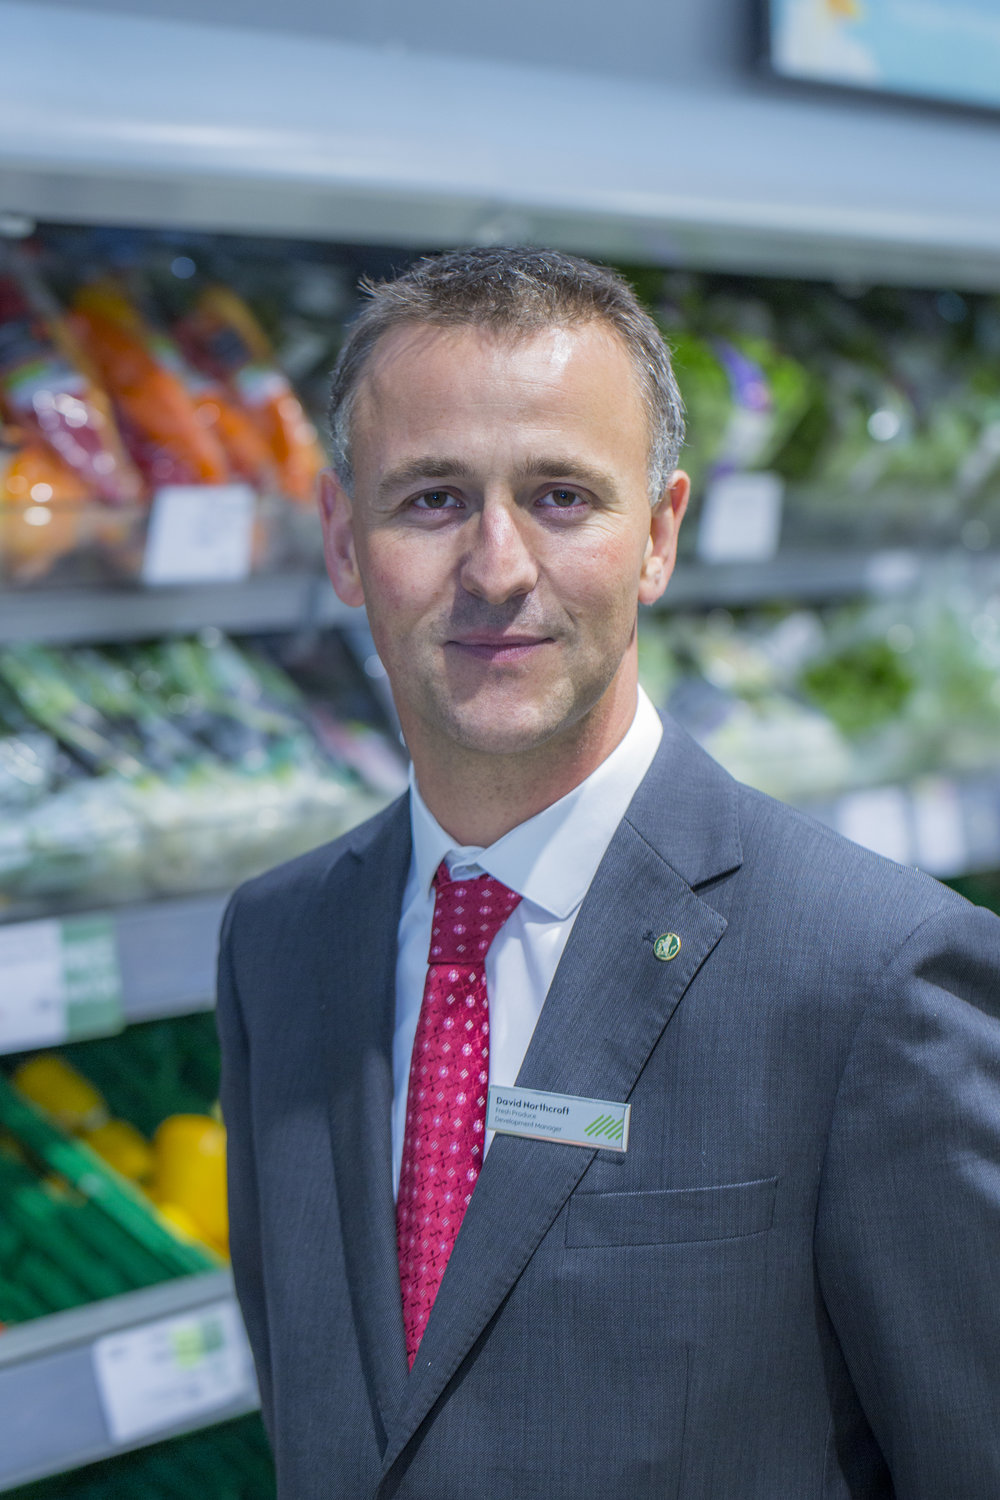 David Northcroft Waitrose.jpg